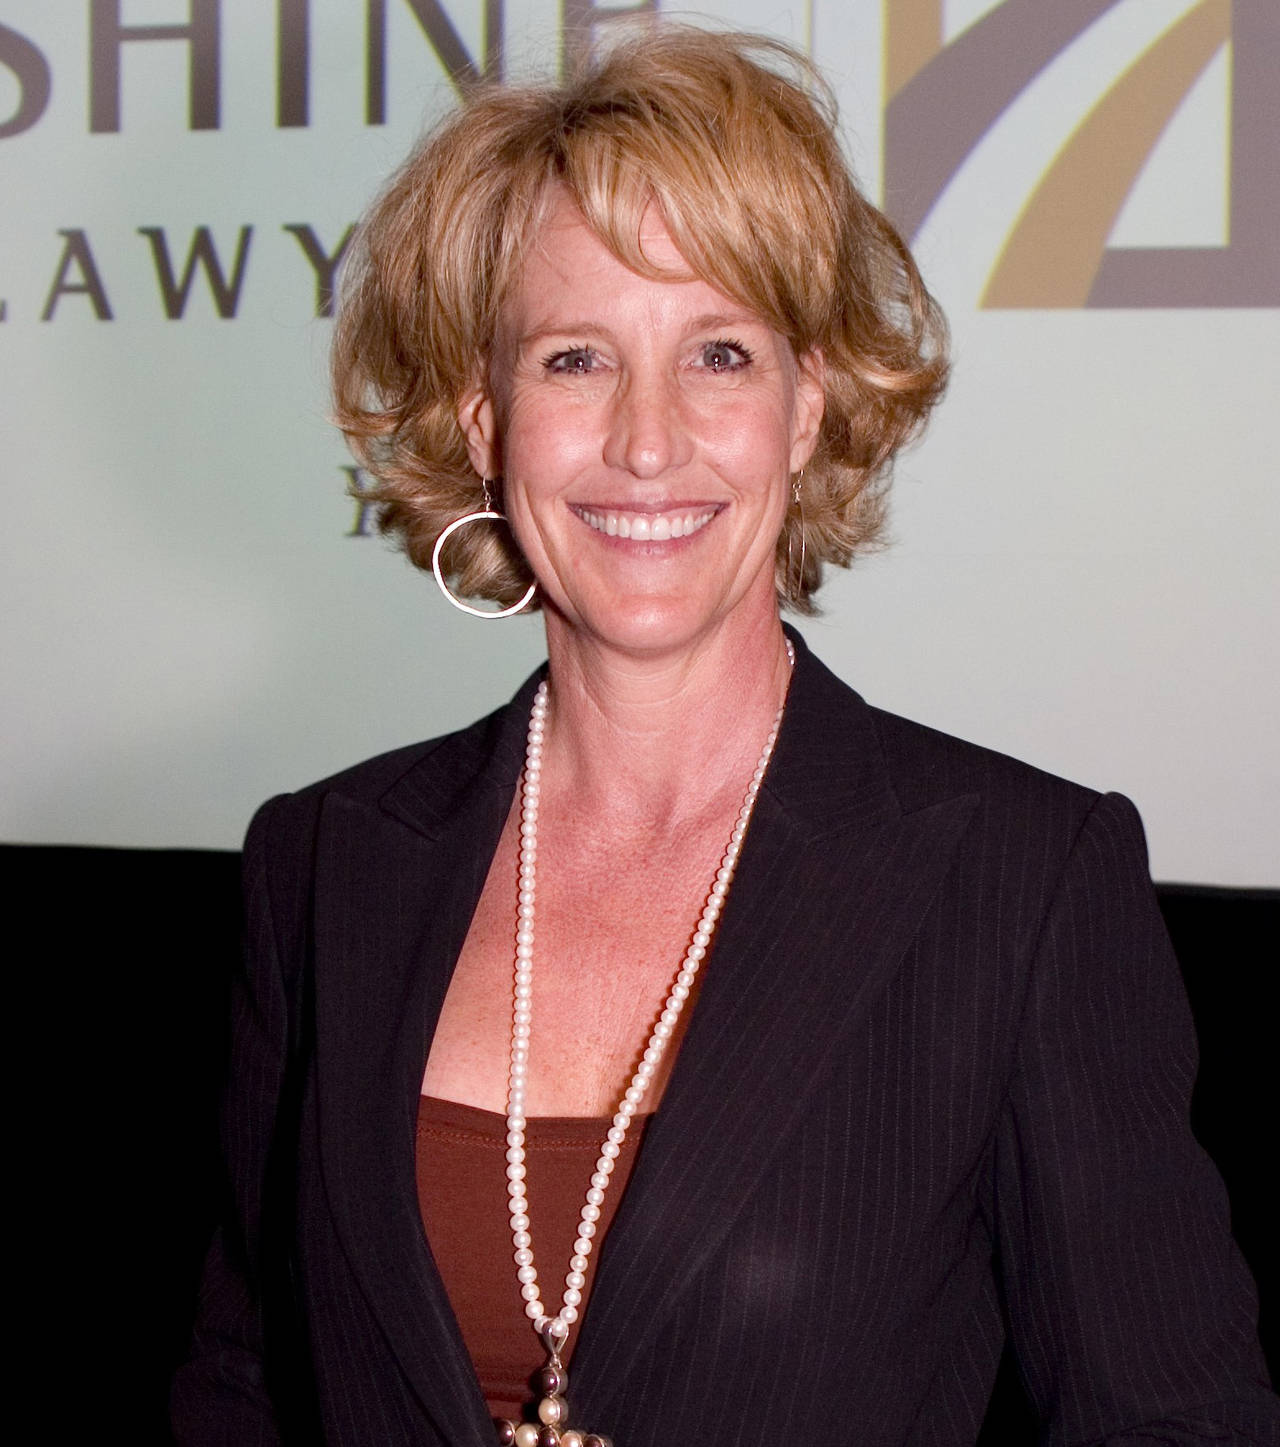 erin brokavich Erin brockovich is helping people who have been adversely impacted by environmental issues, pharmaceuticals, medical devices and personal injury.